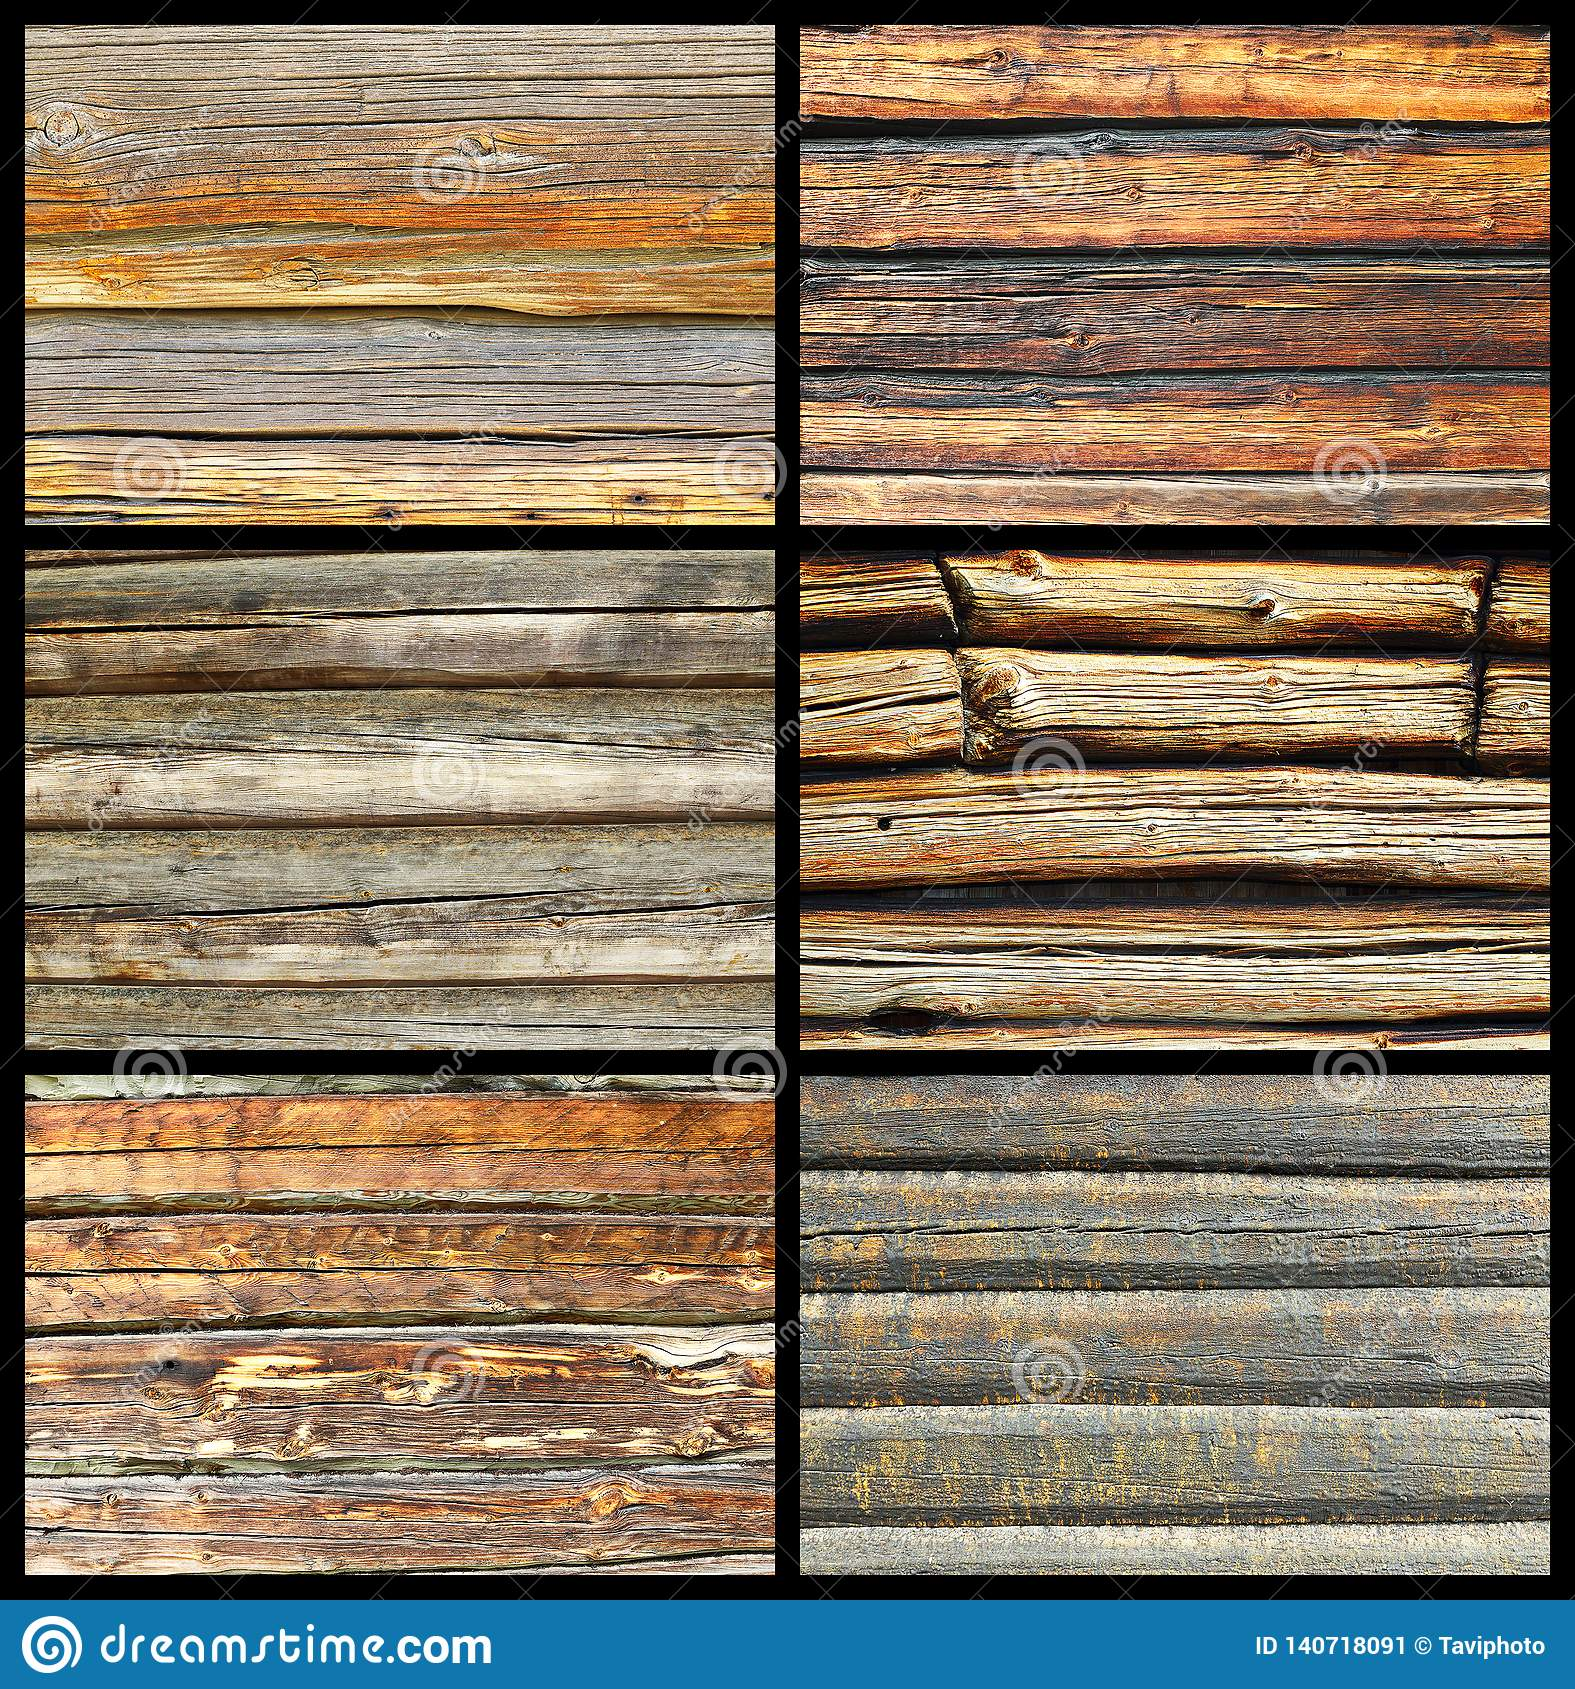 Collection Of Textured Wooden Walls Stock Image - Image of natural